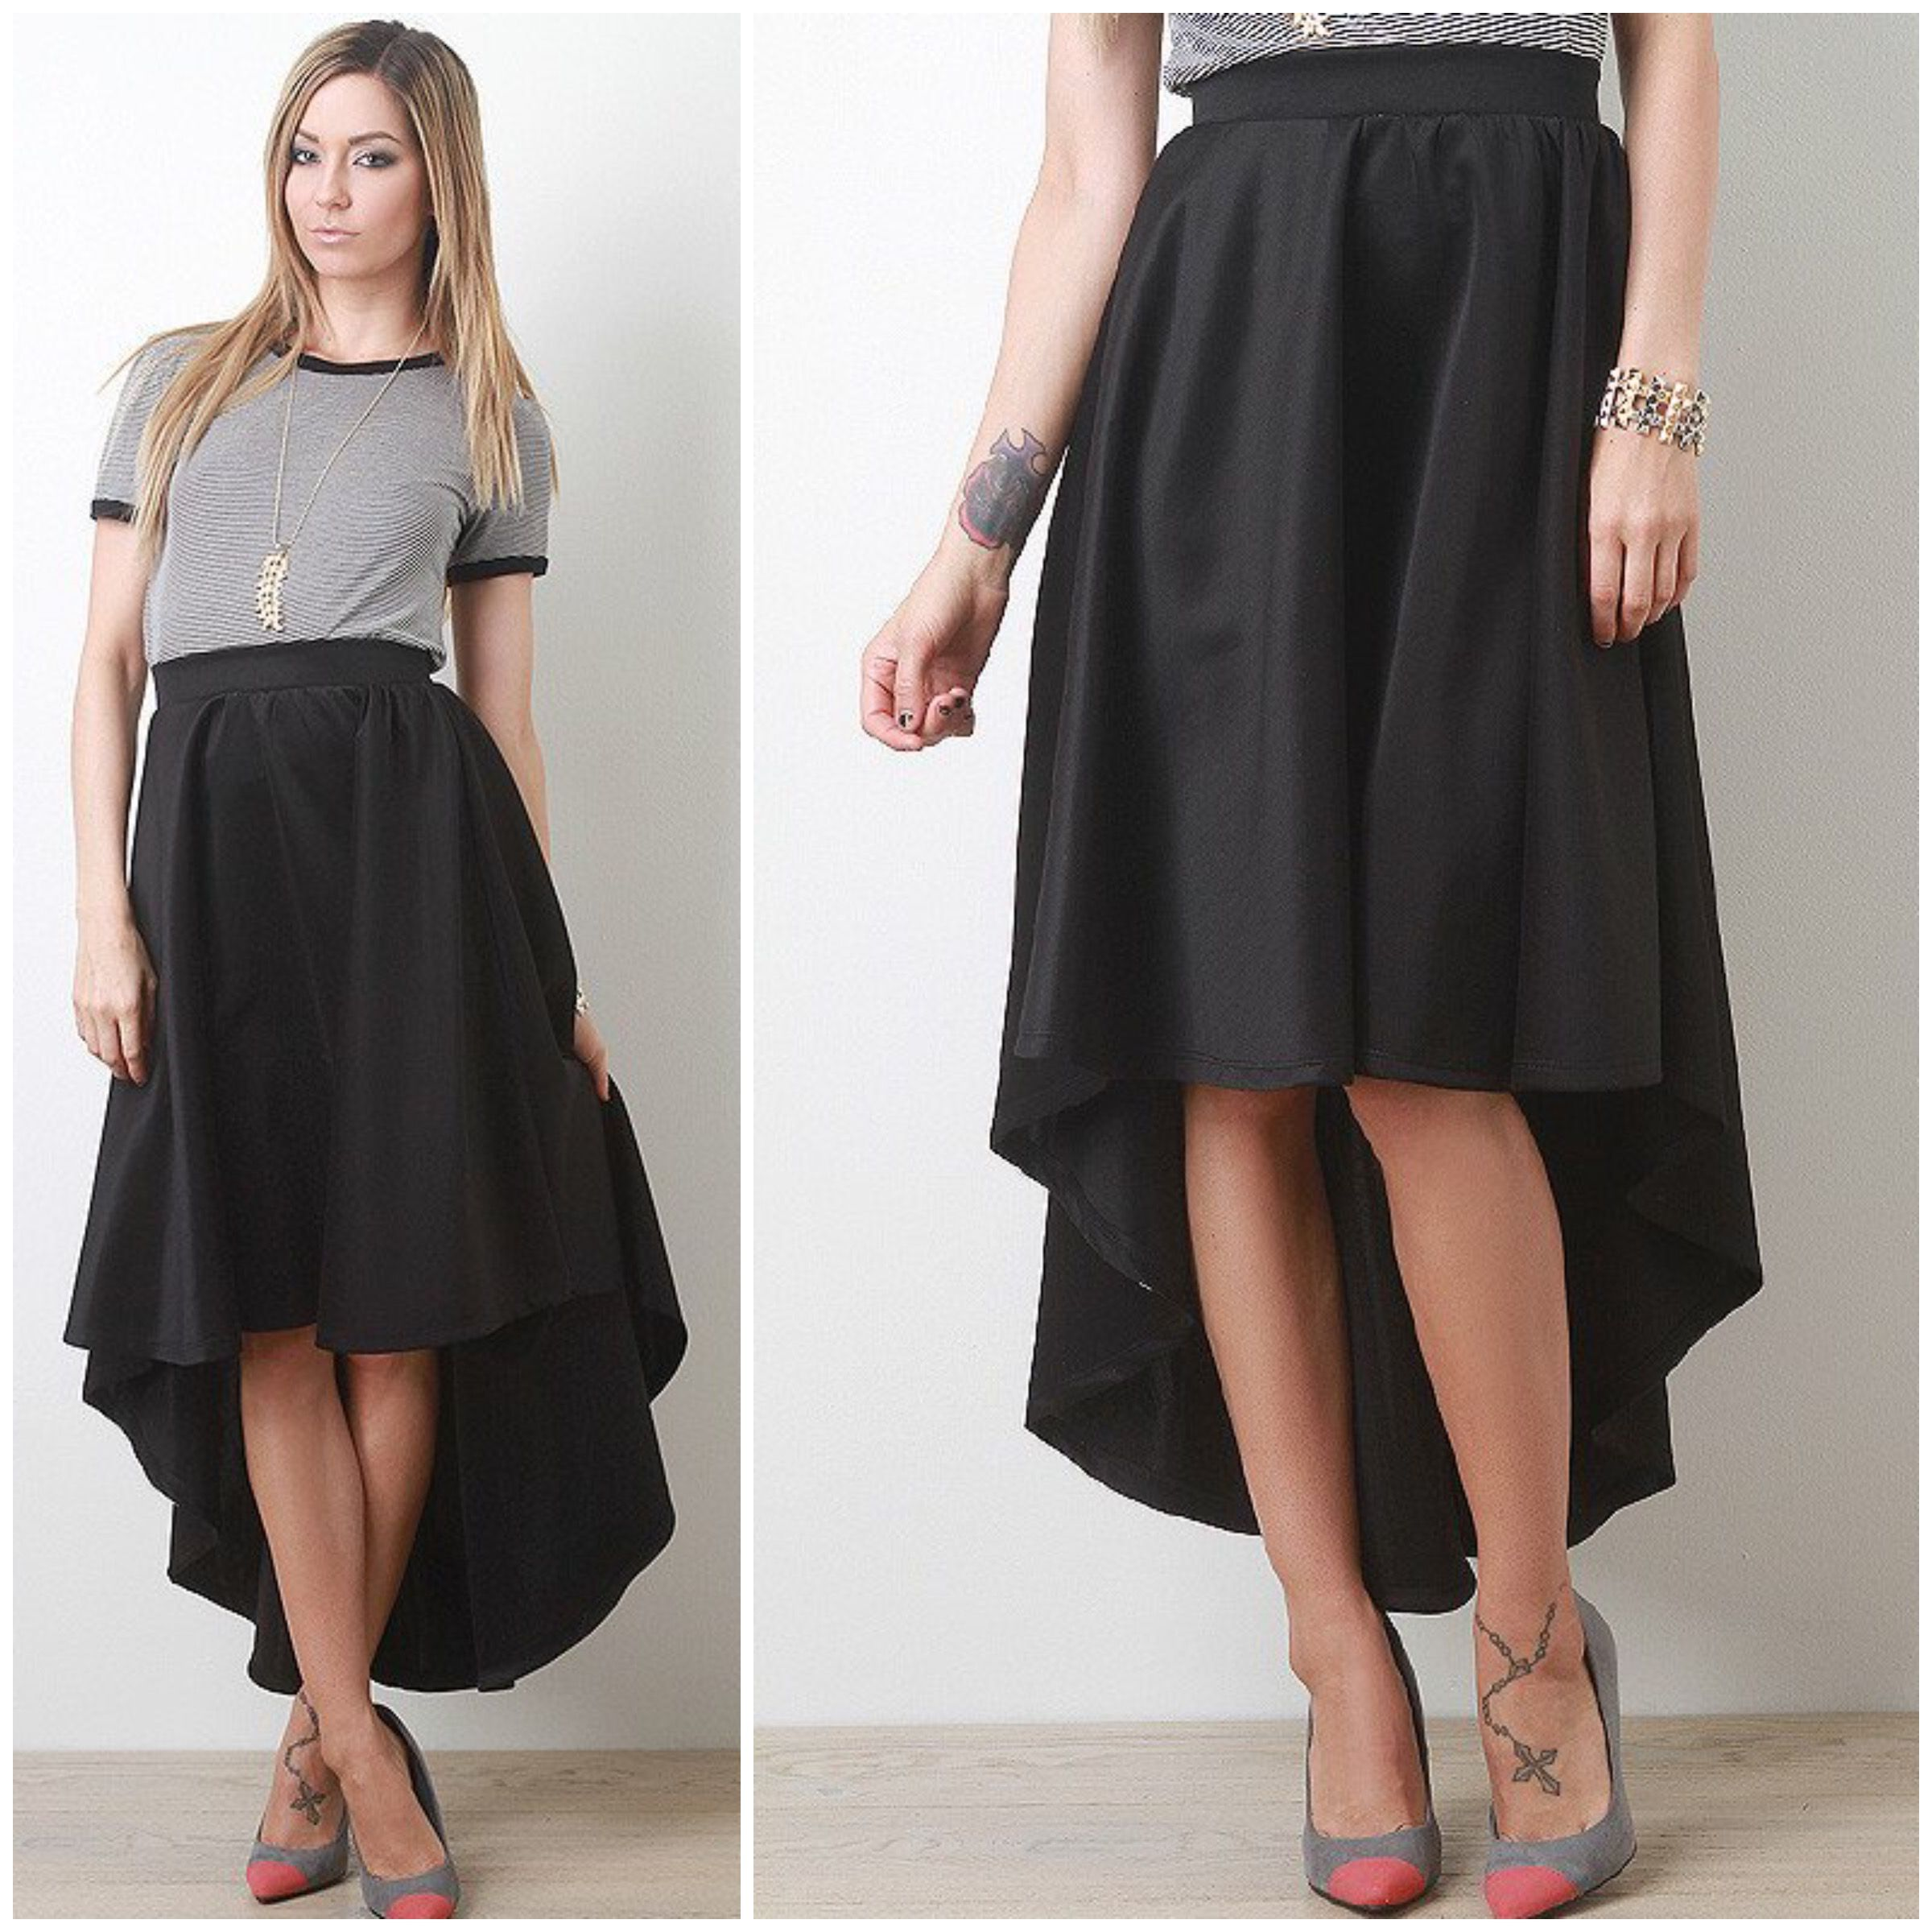 2019 year for girls- Waisted high maxi skirts tumblr